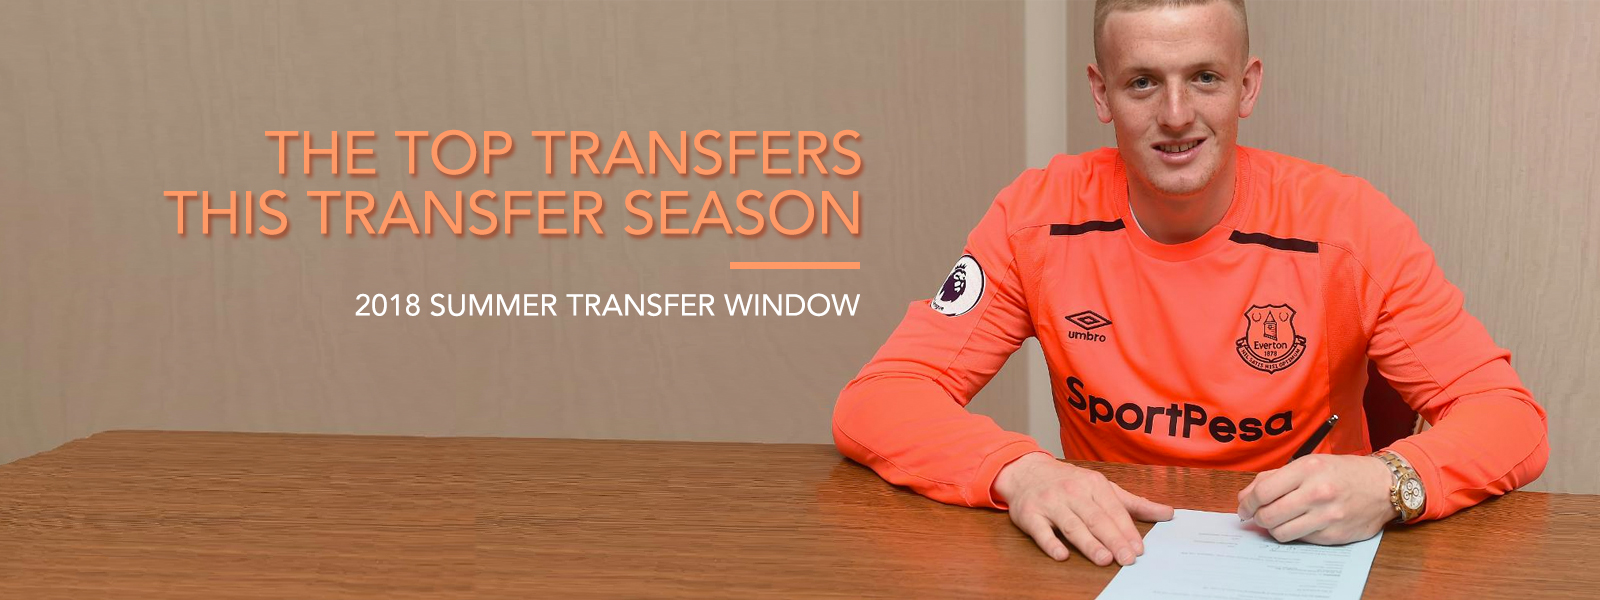 The Top Transfers This Transfer Season (2018 Summer Transfer Window)